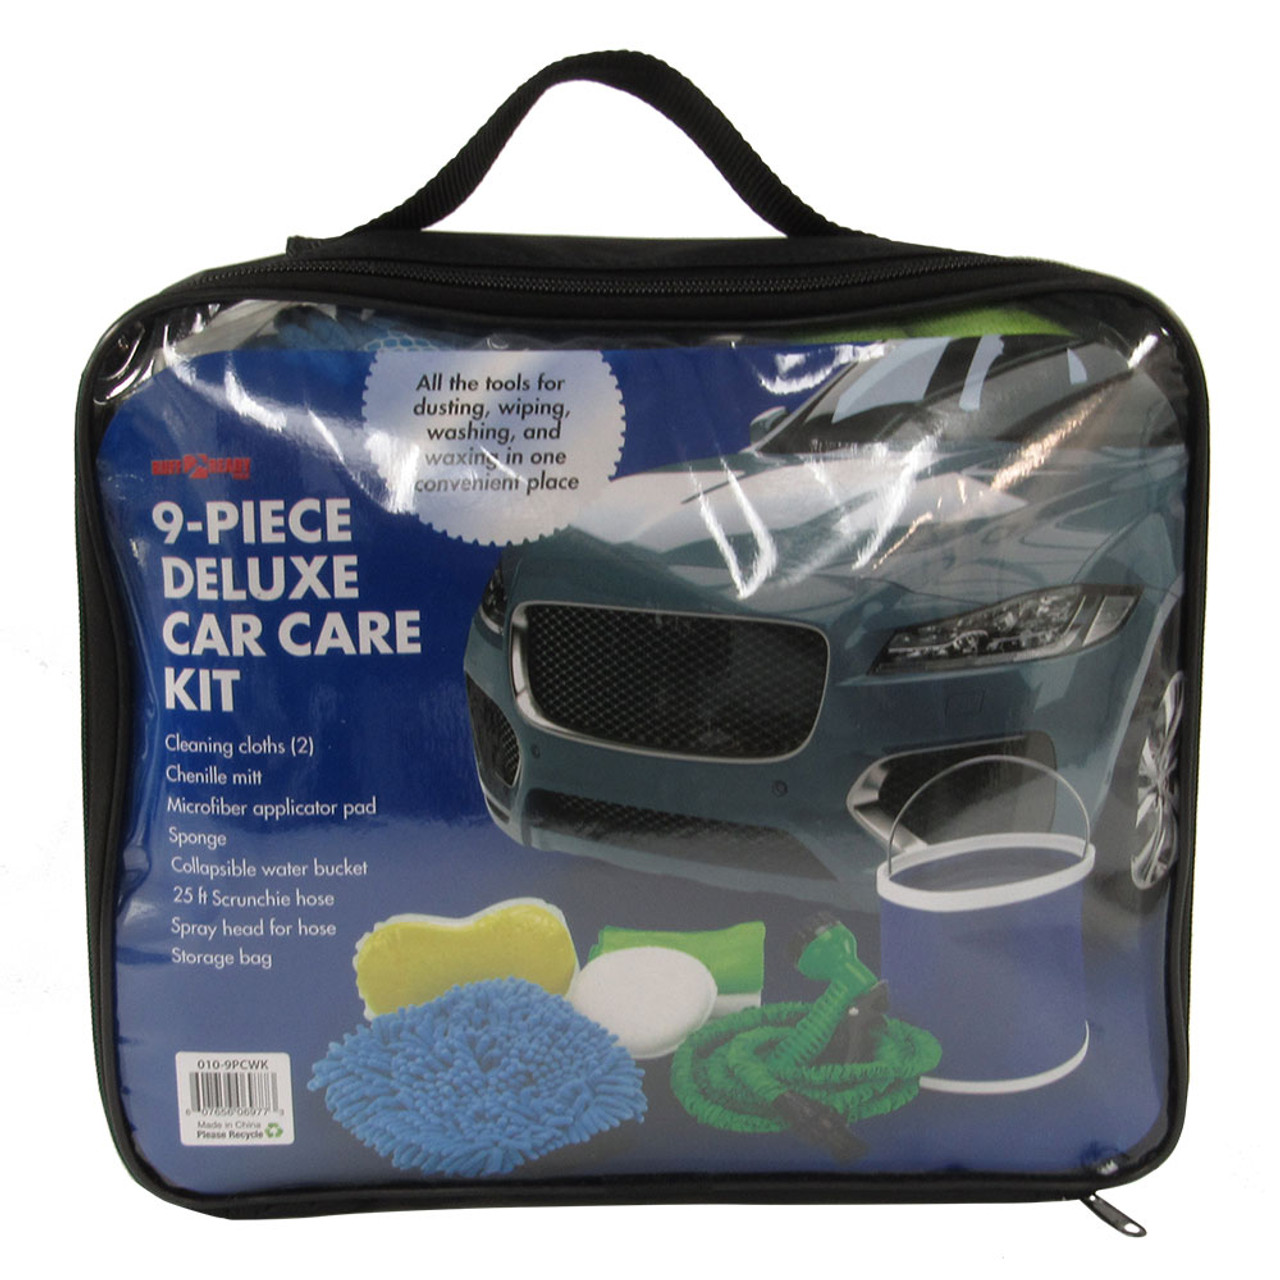 Deluxe 9-Piece Car Care Kit